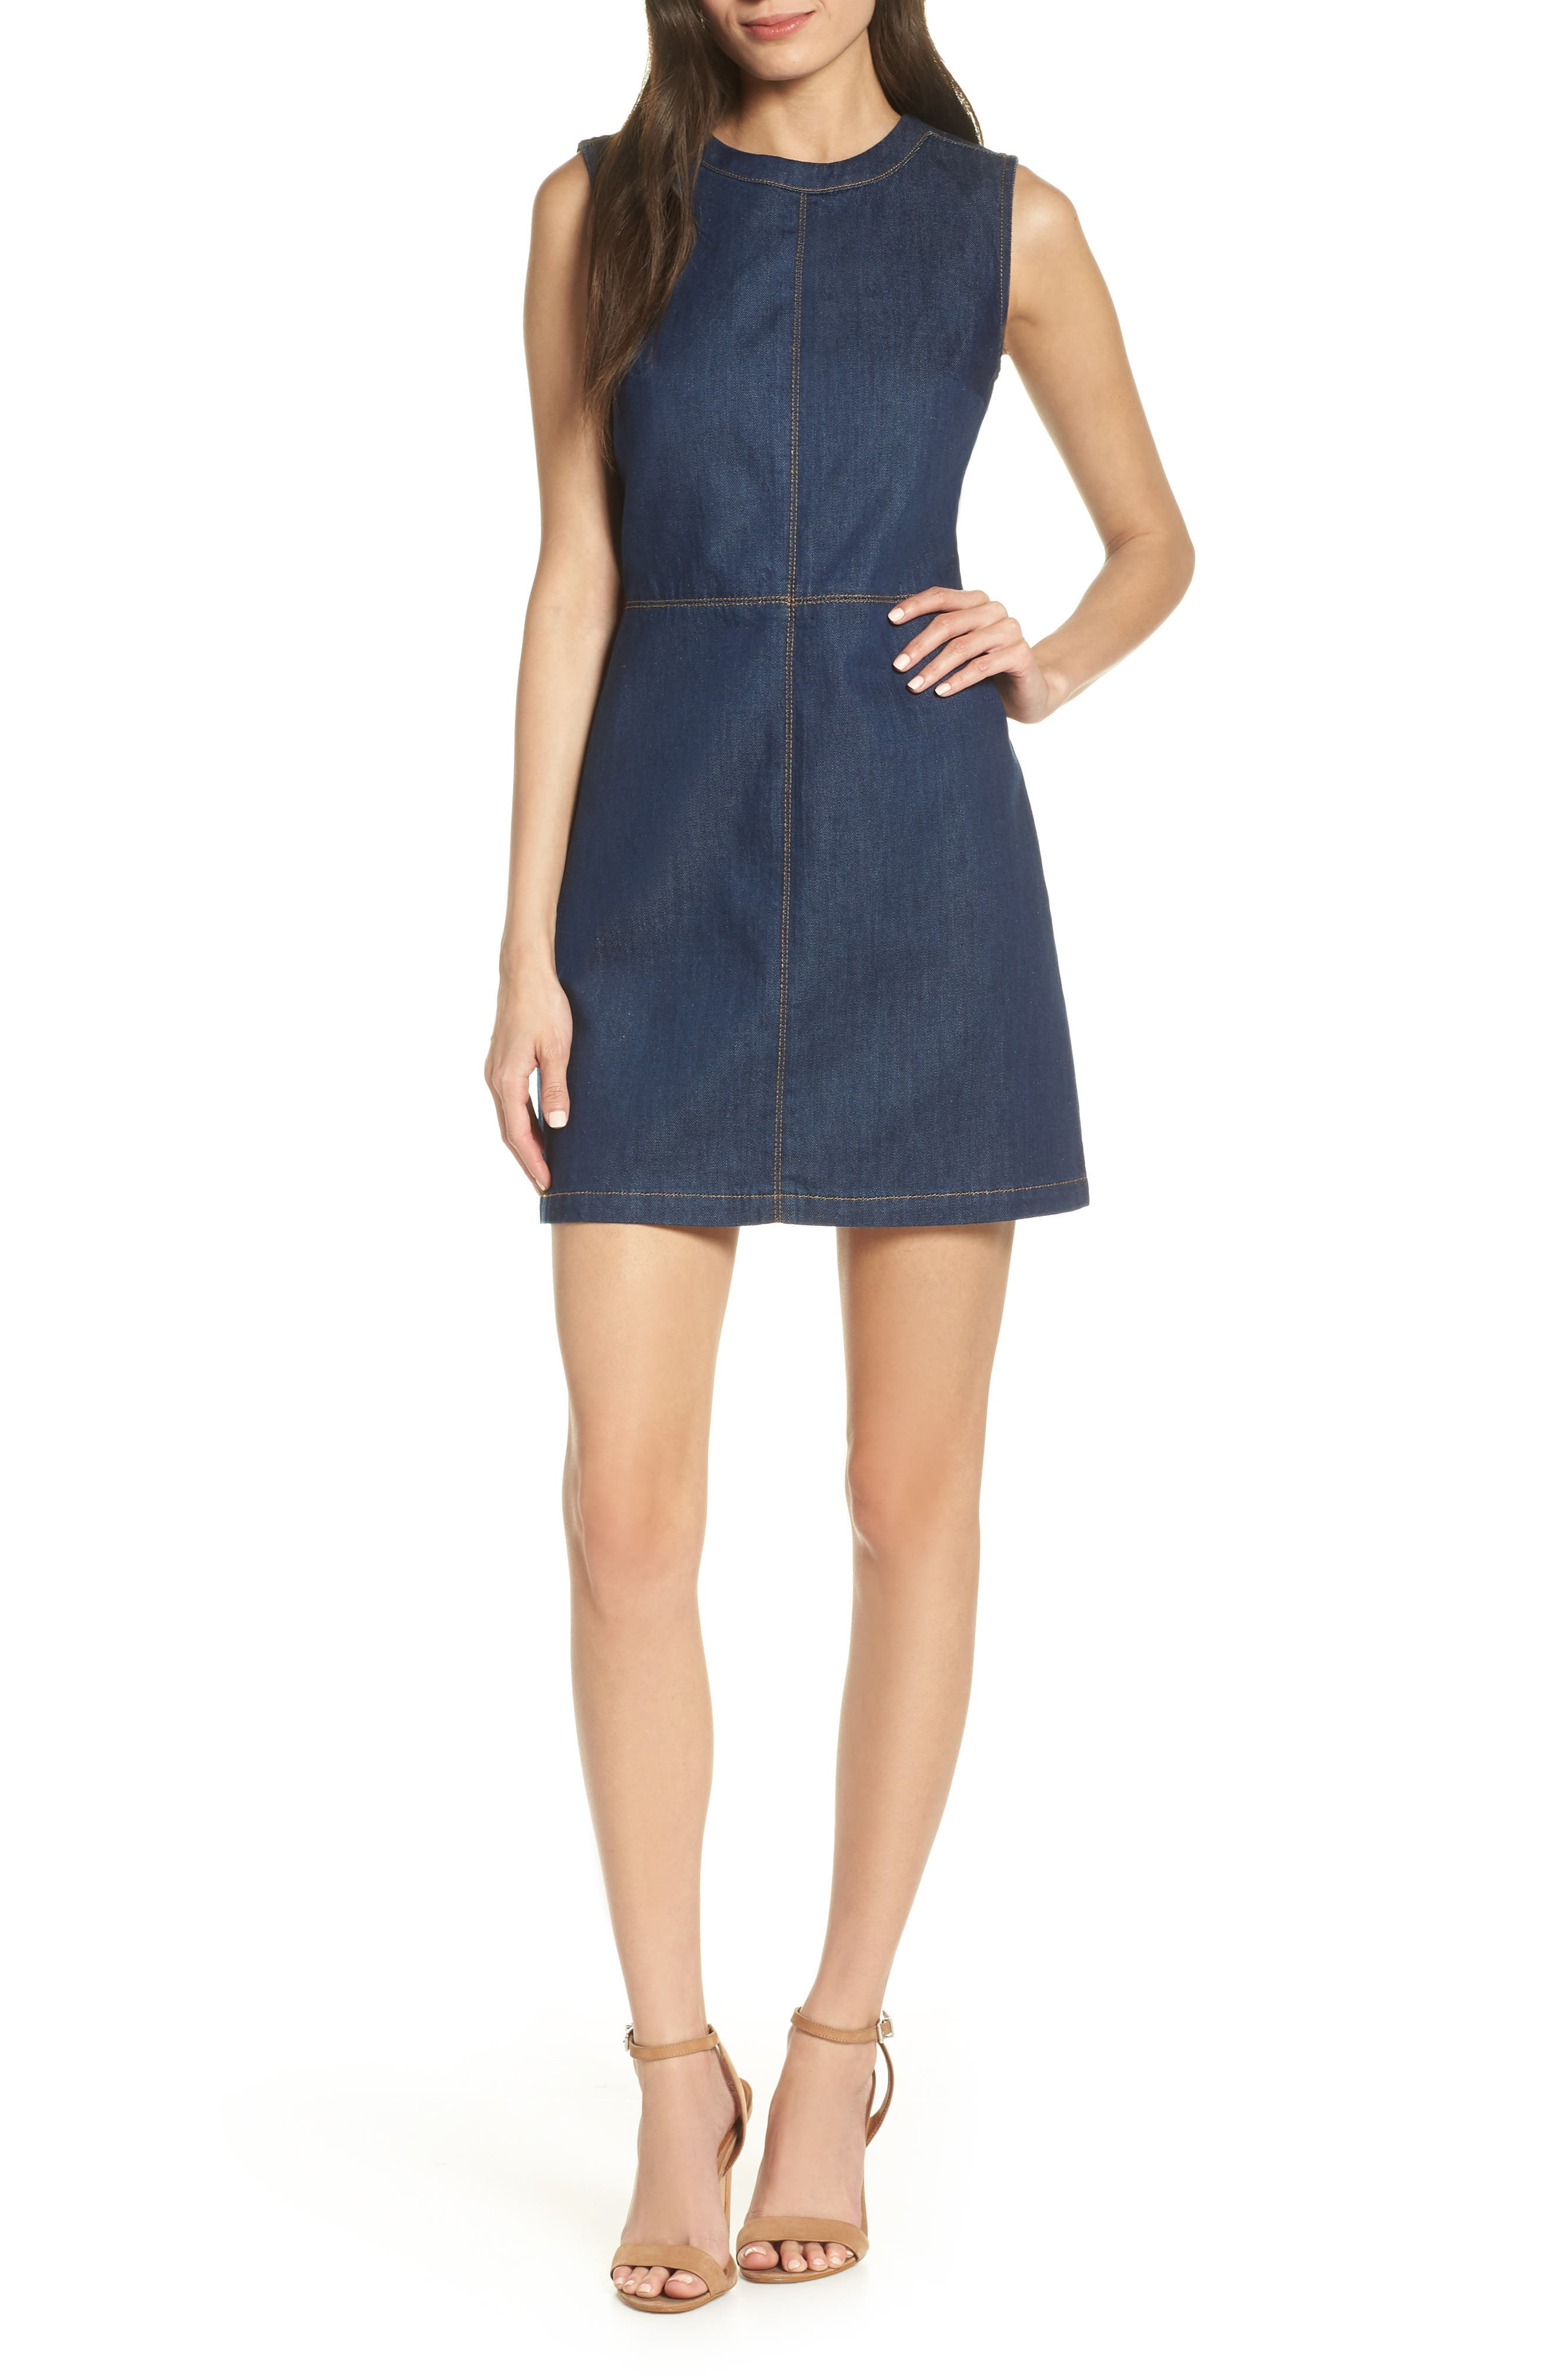 French Connection Linaira Contrast Stitch Denim Minidress, Blue